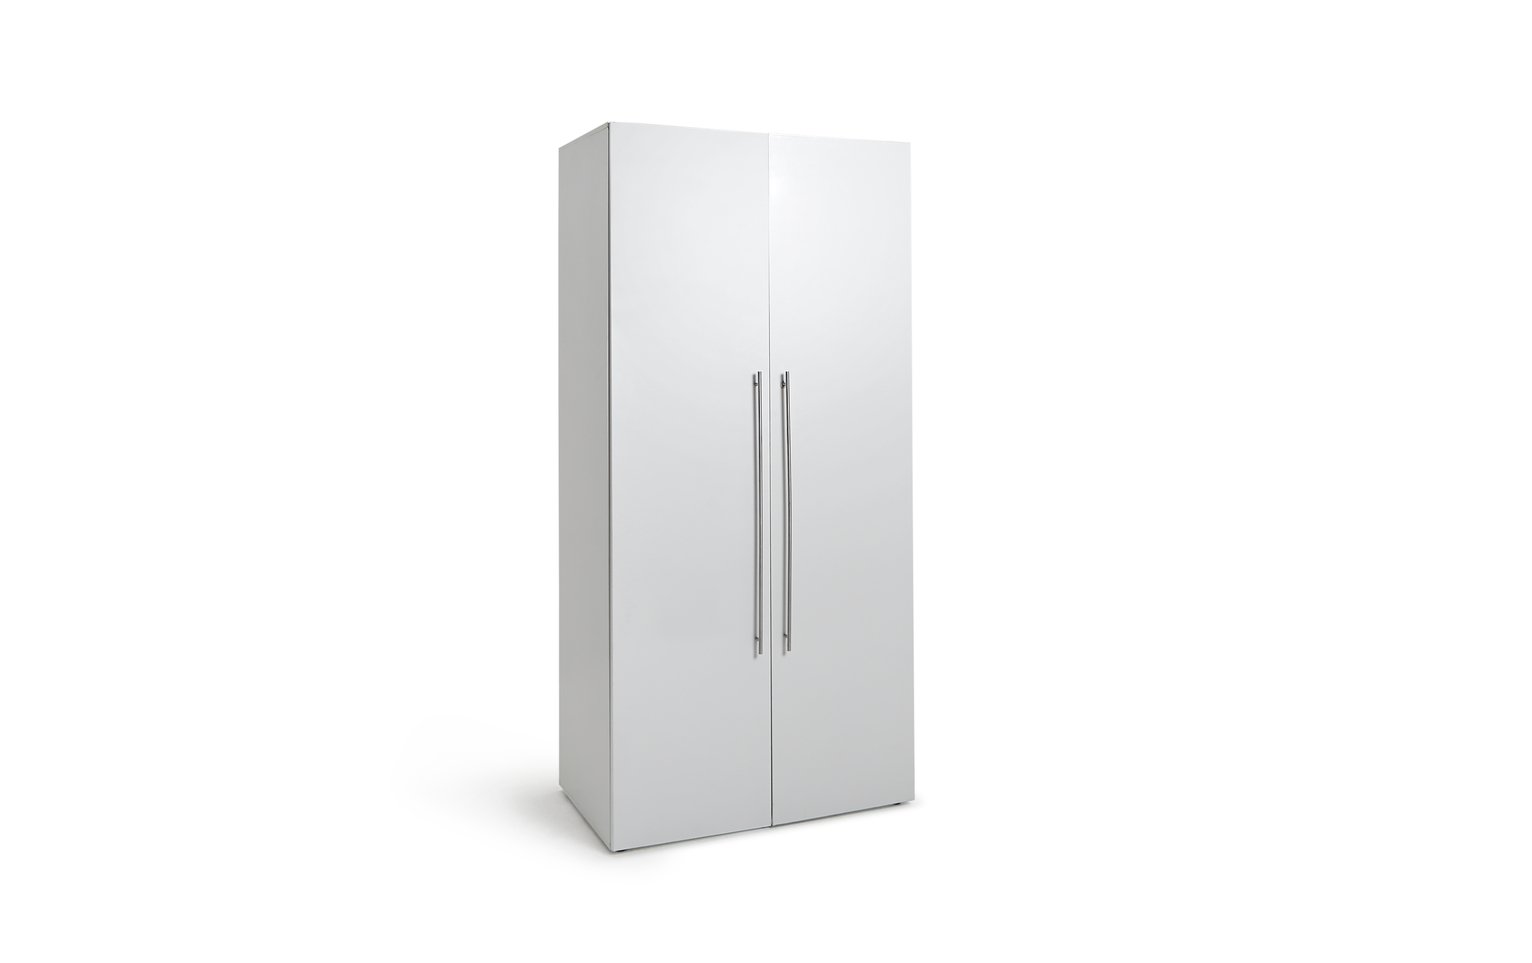 Hygena Atlas 2 Door Wardrobe - White Gloss from Hygena